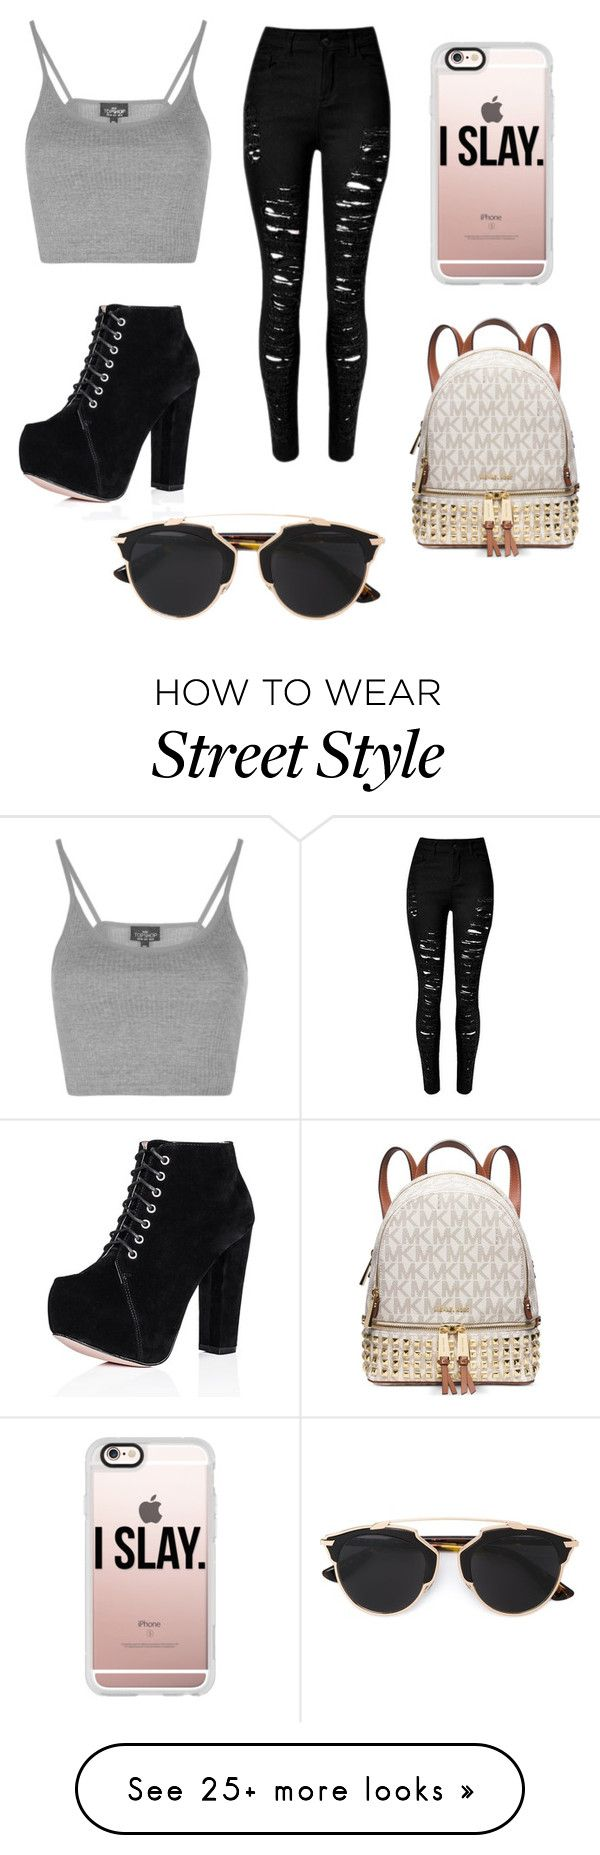 """""""street style"""" by ashleaxlou on Polyvore featuring Topshop, Casetify, Christian Dior and Michael Kors"""